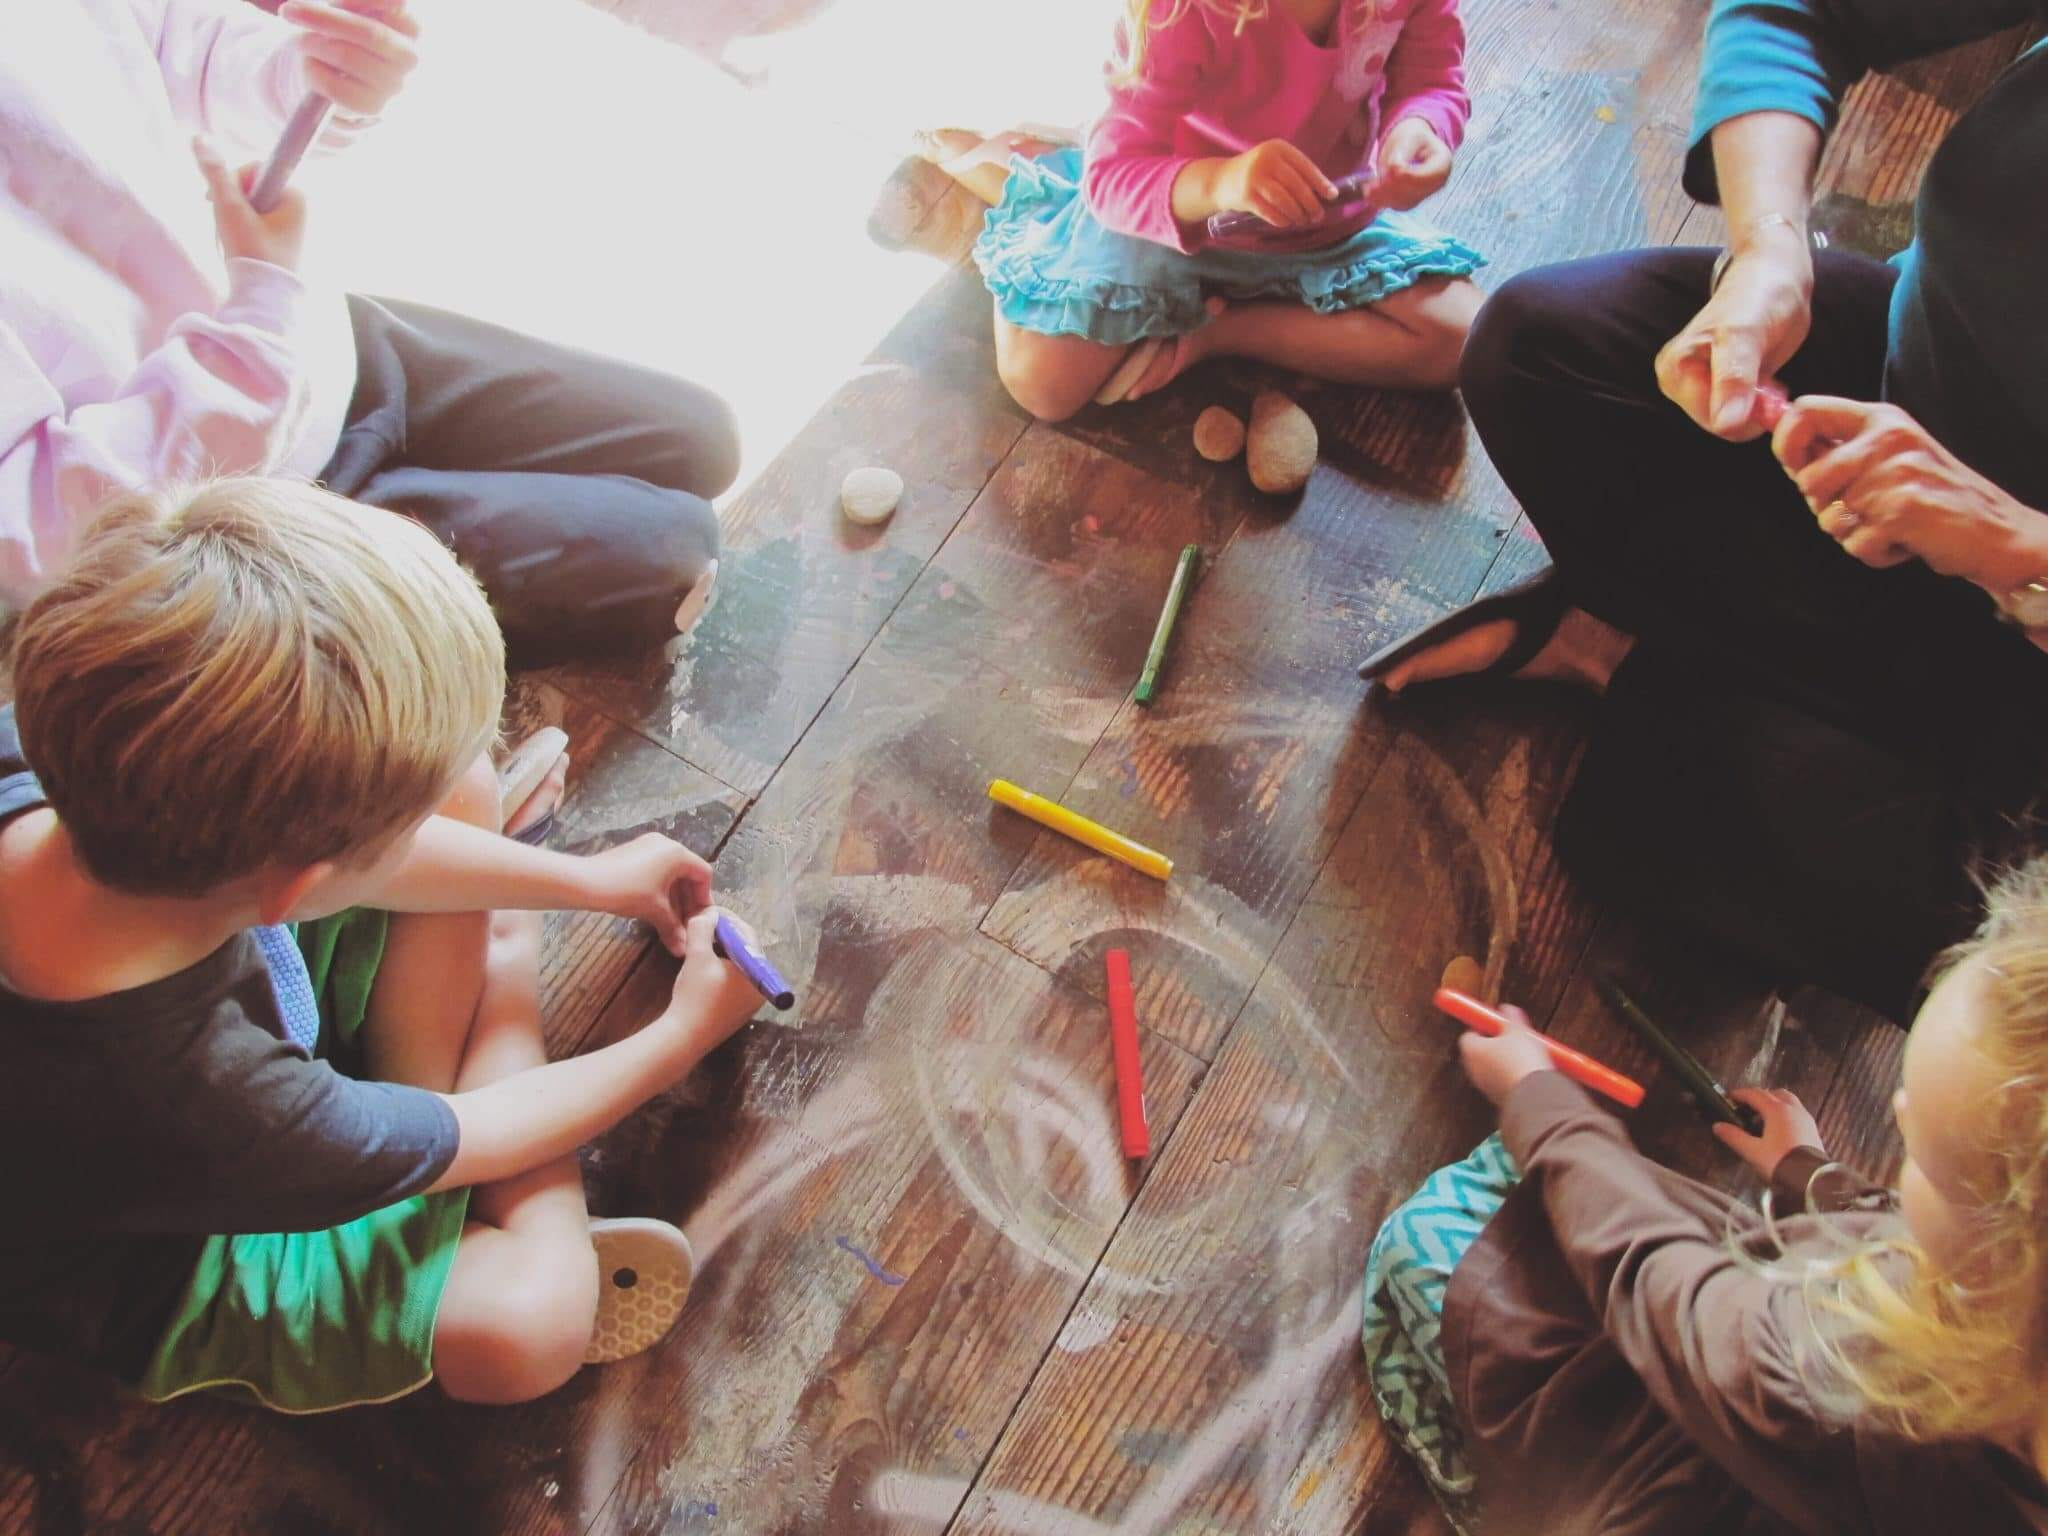 Kids learning about nature while playing with chalk and rocks